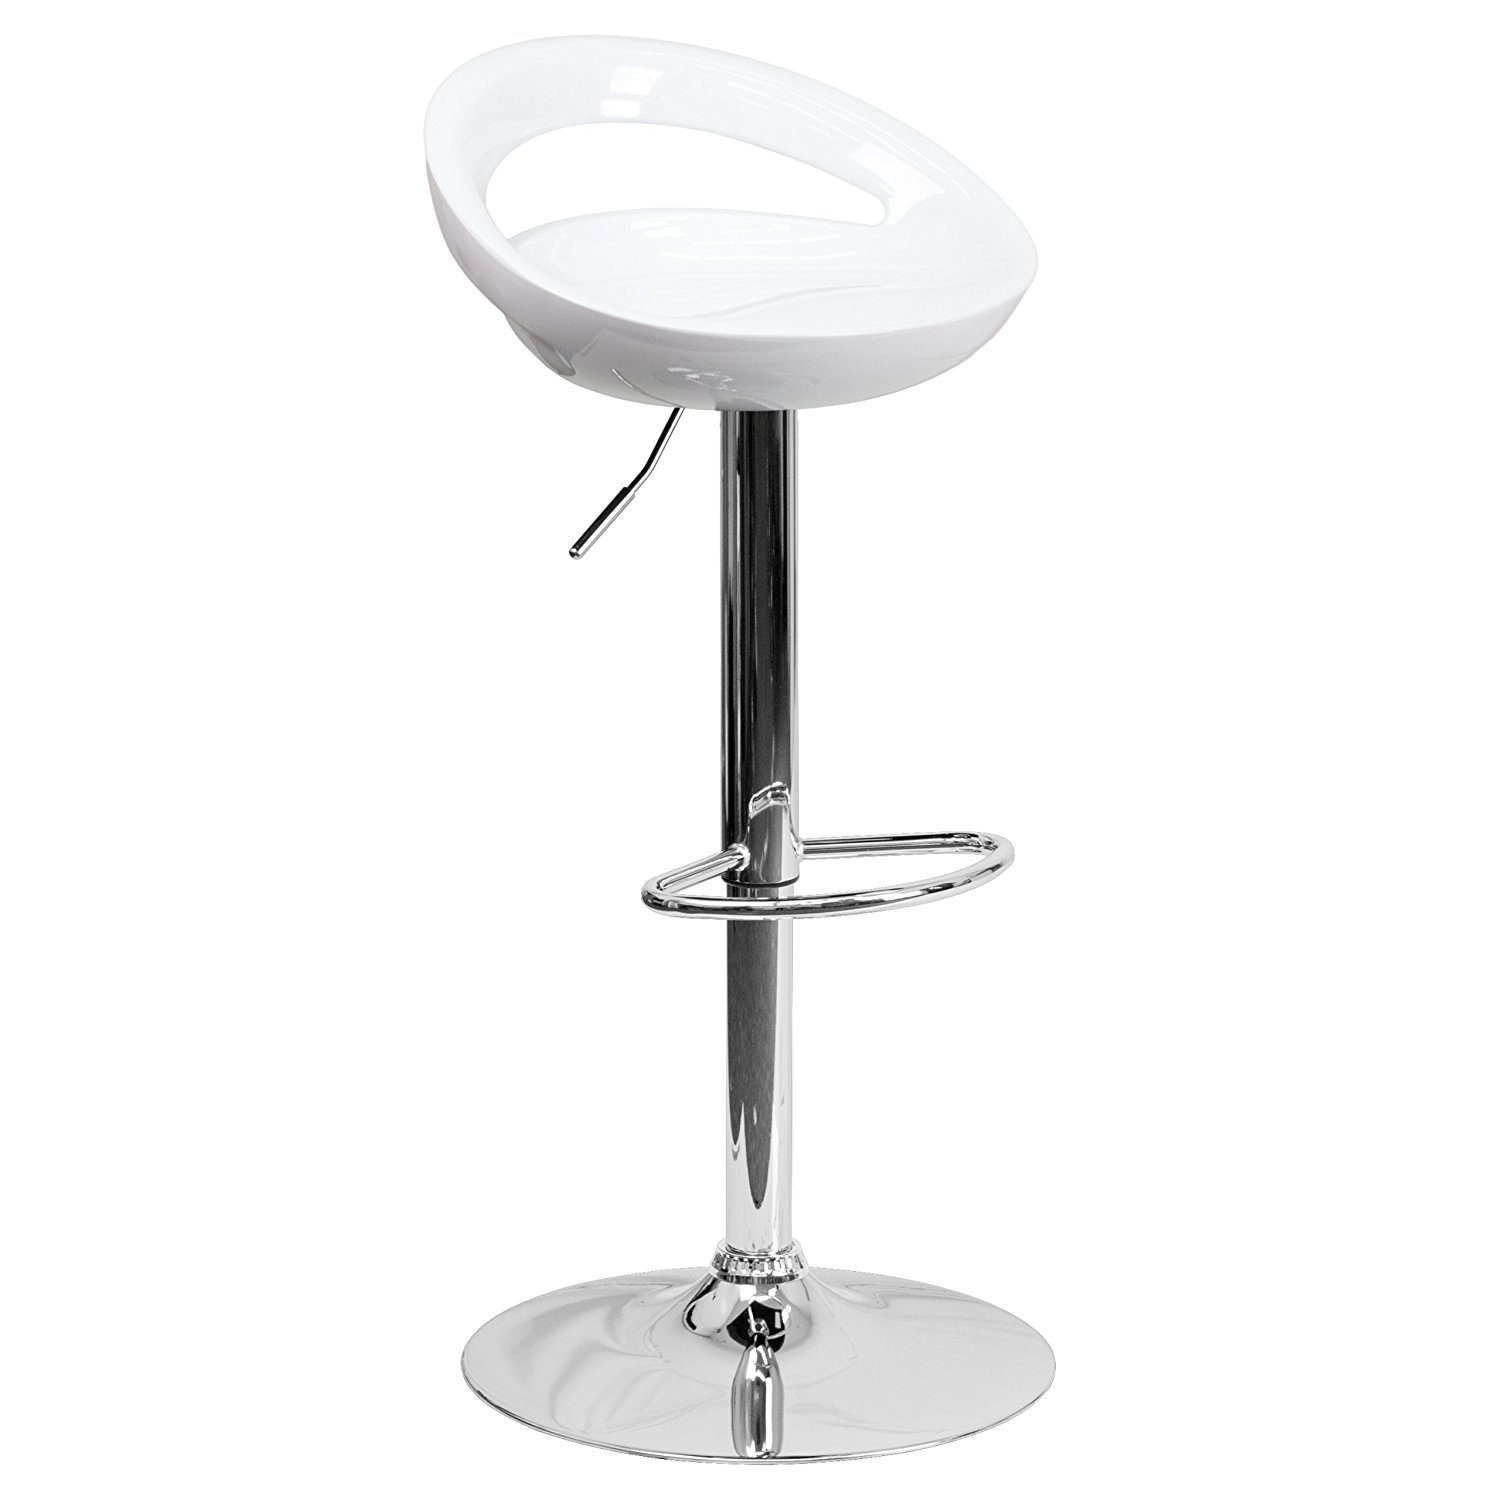 White Adjustable Swivel Bar Stools, Chairs for Cafe Kitchen Bar Counter Top (Black),Red